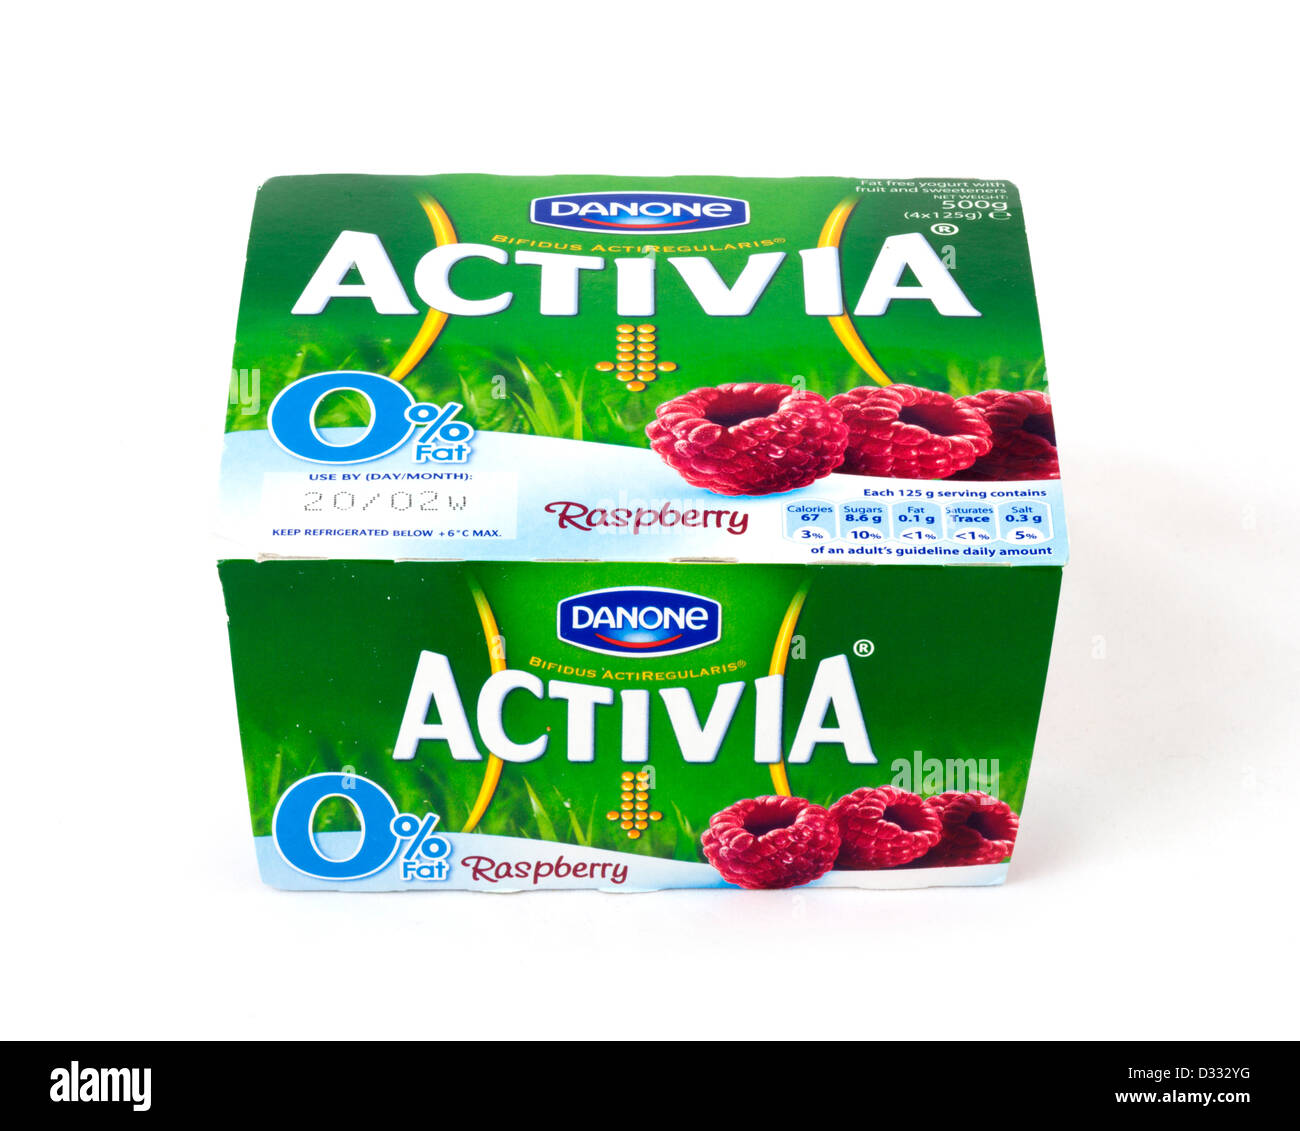 Activia Yogurt Stock Photos &amp- Activia Yogurt Stock Images - Alamy